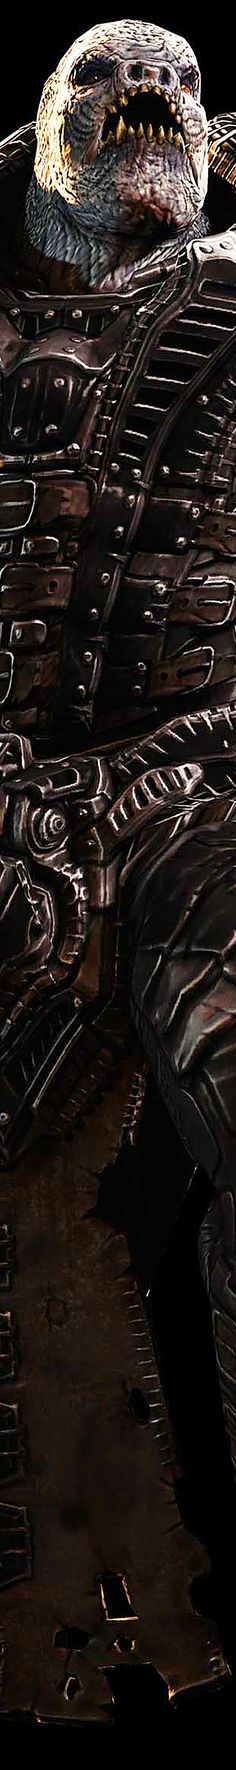 Gears of War: General RAAM. Toughest boss out of all the games combined.